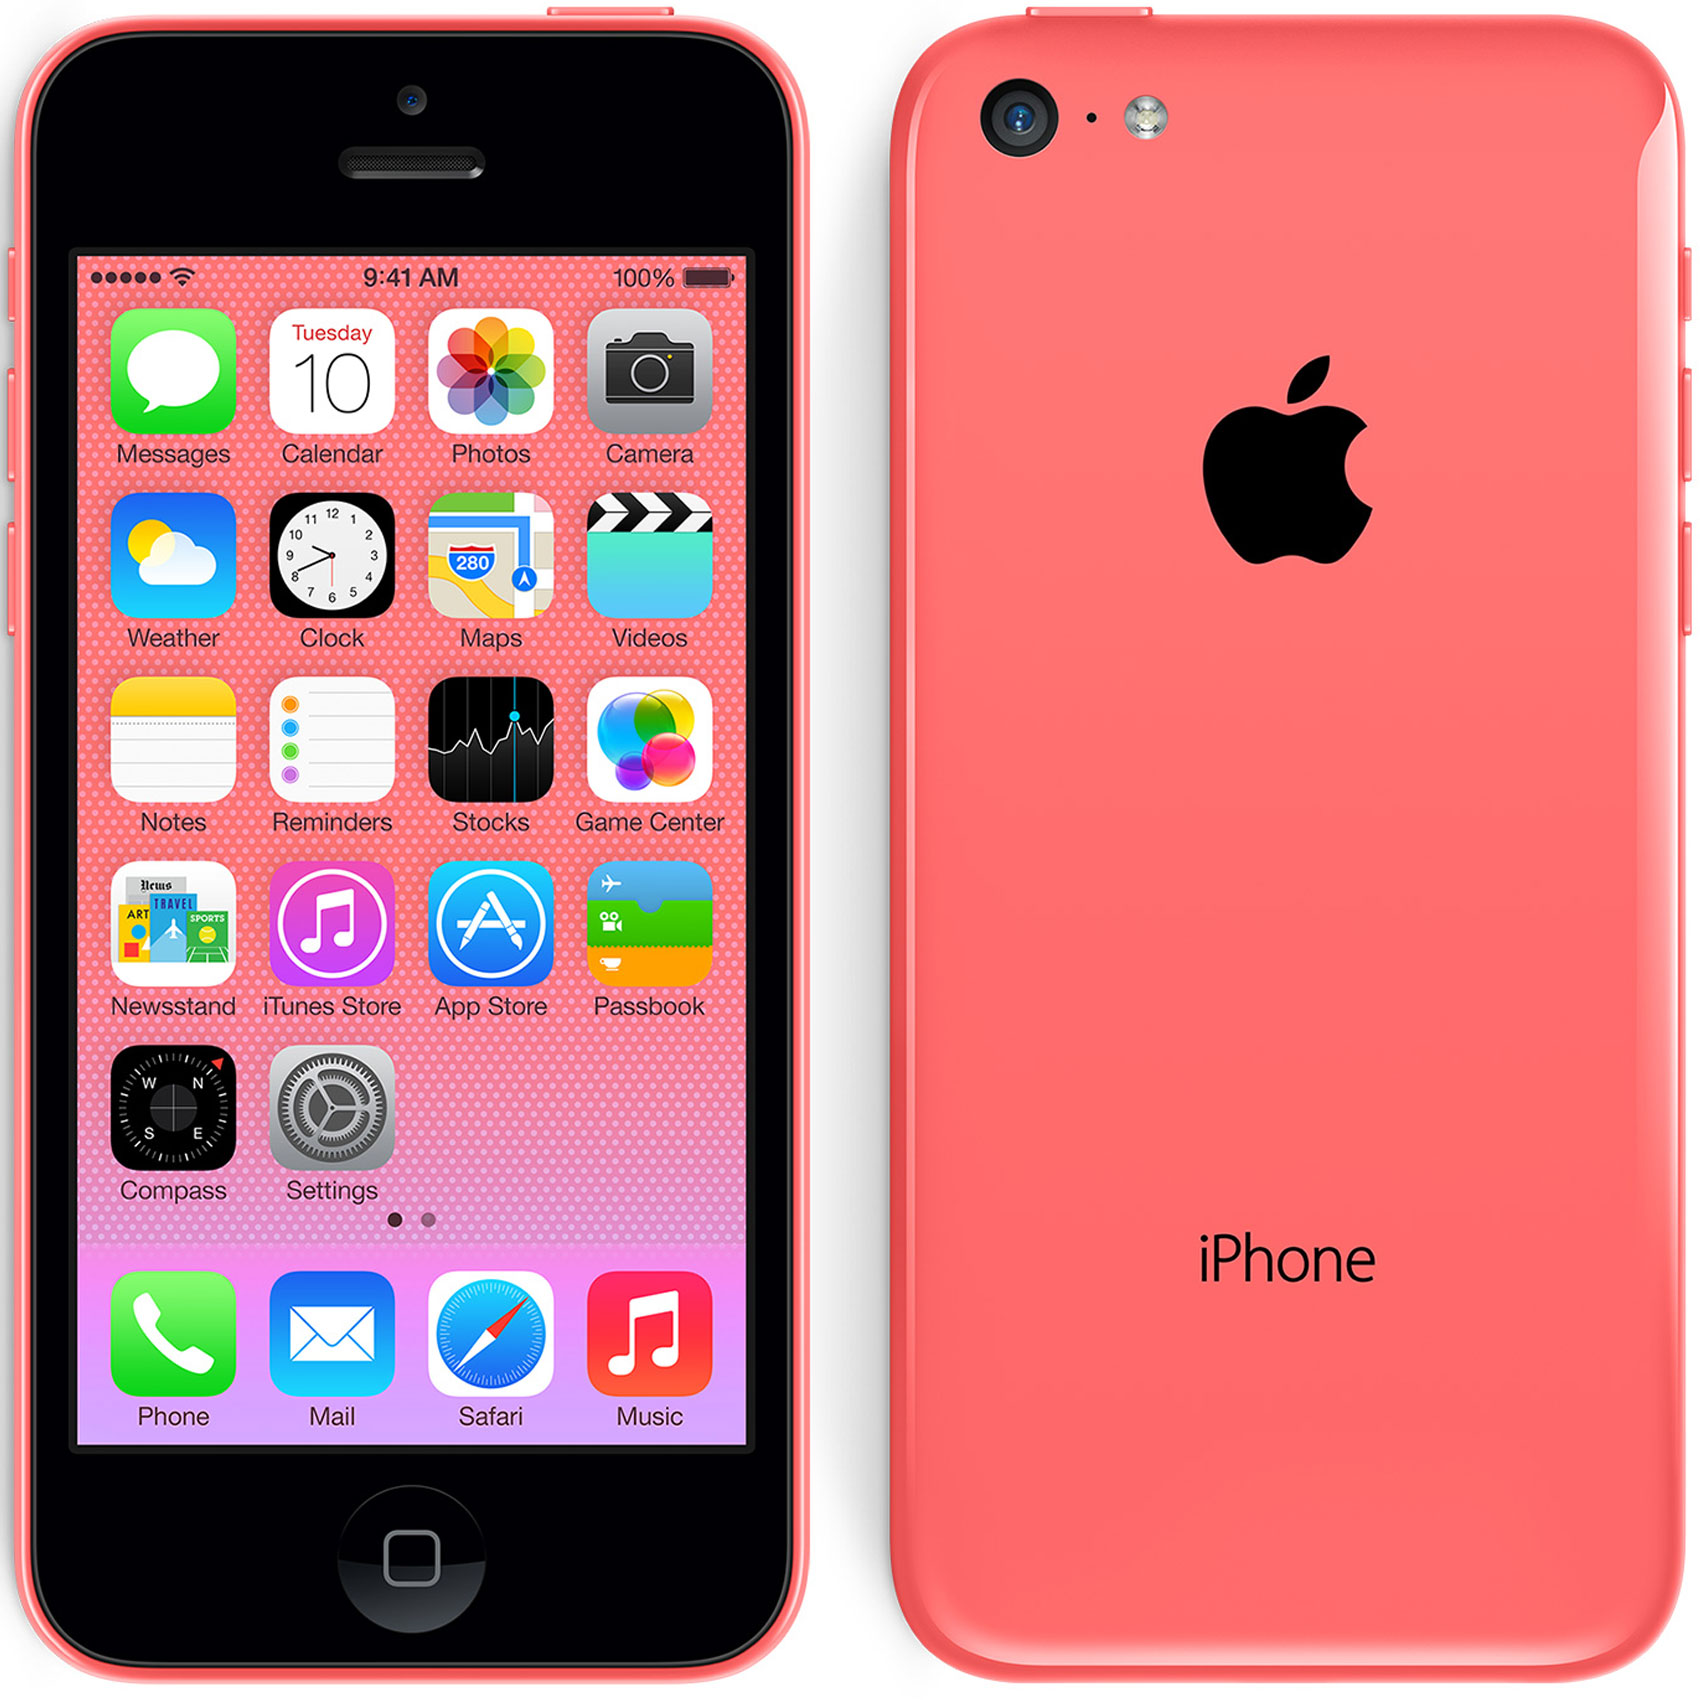 Venta De Moviles Libres Iphone Moviles Libres Apple Iphone 5c 8gb Rojo